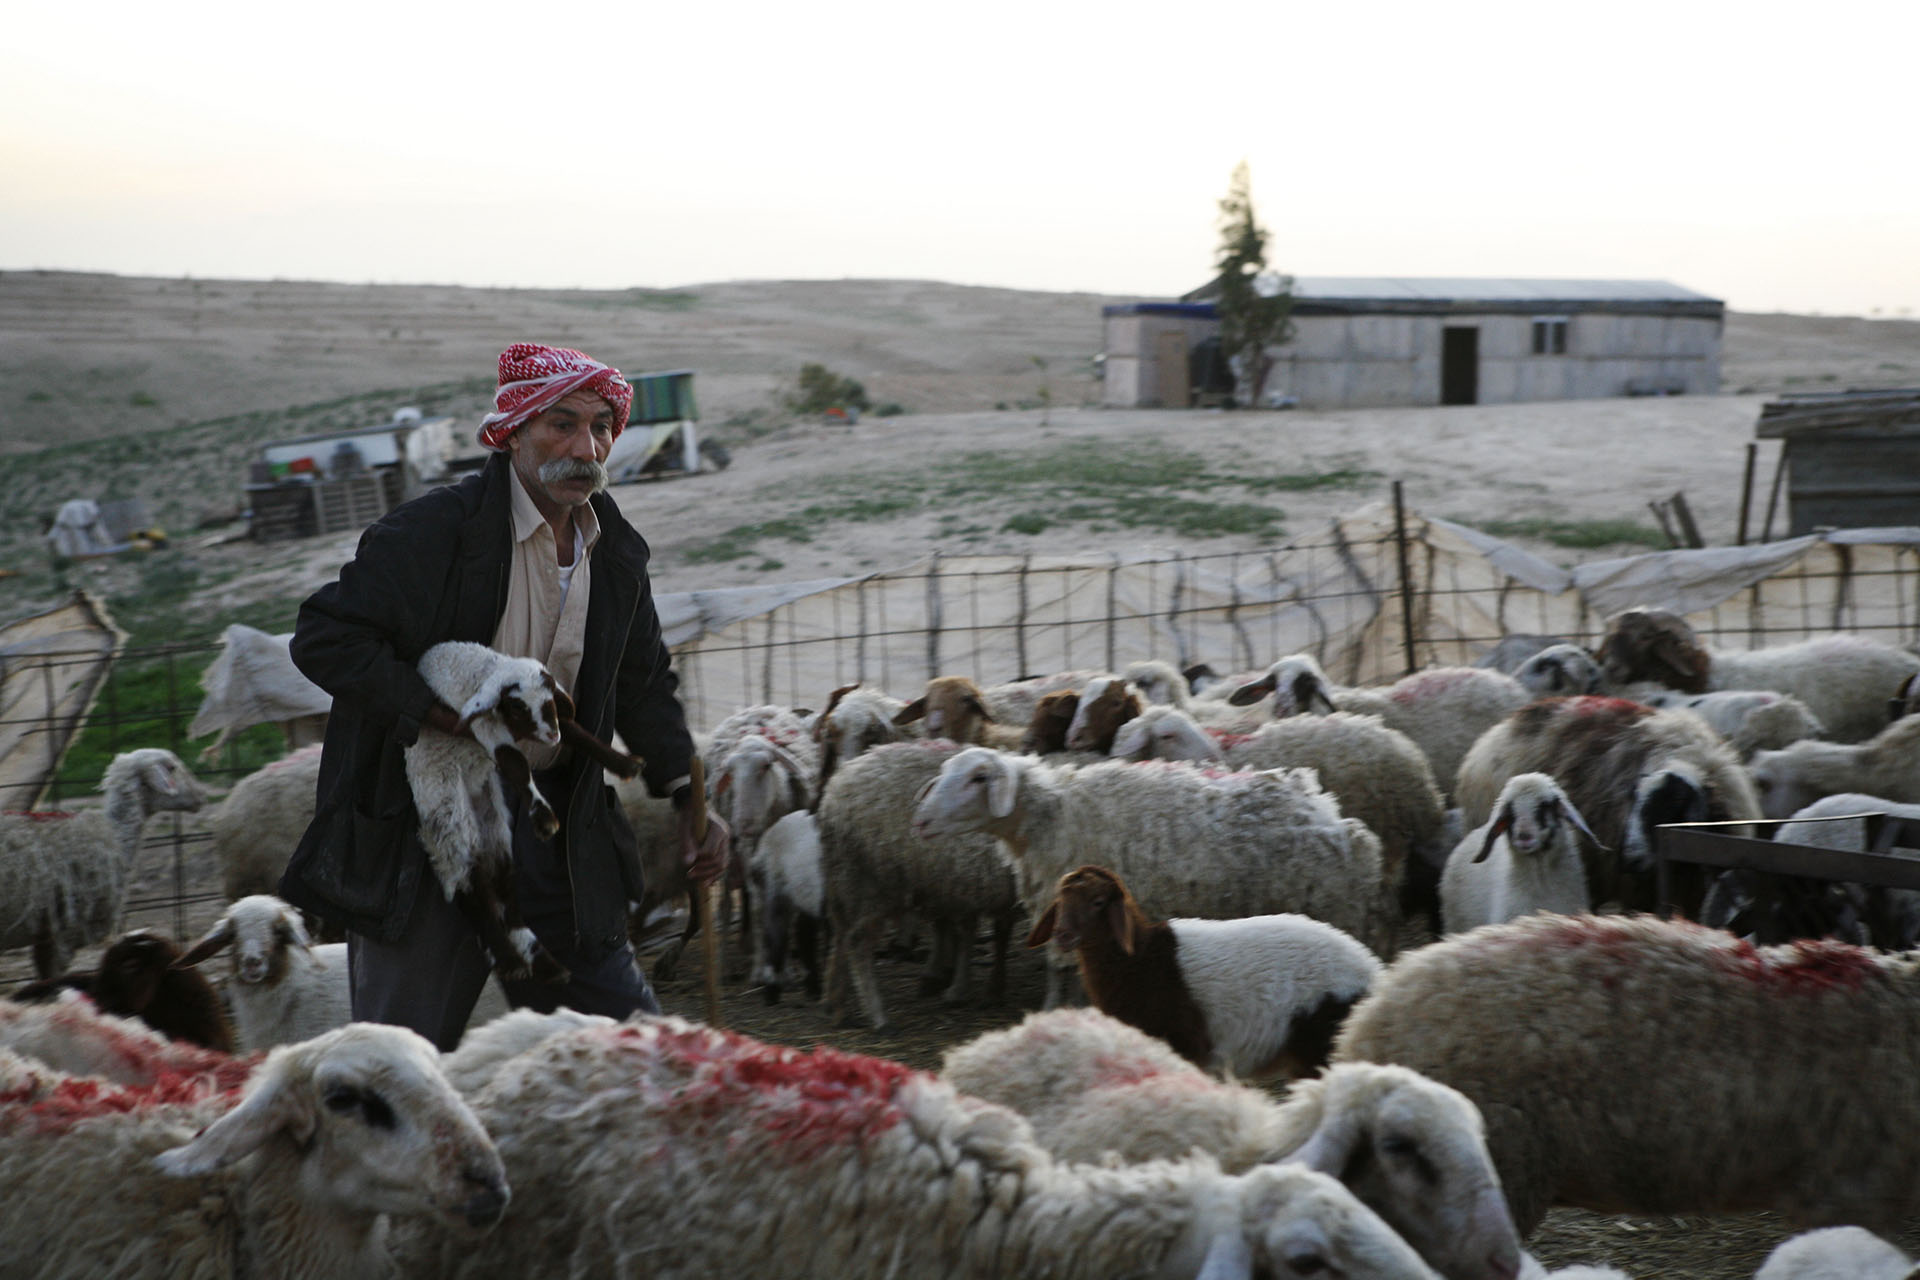 Sheikh Sayah, head of the village of Al Araqib tends to his sheep. Al Araqib, February 2010